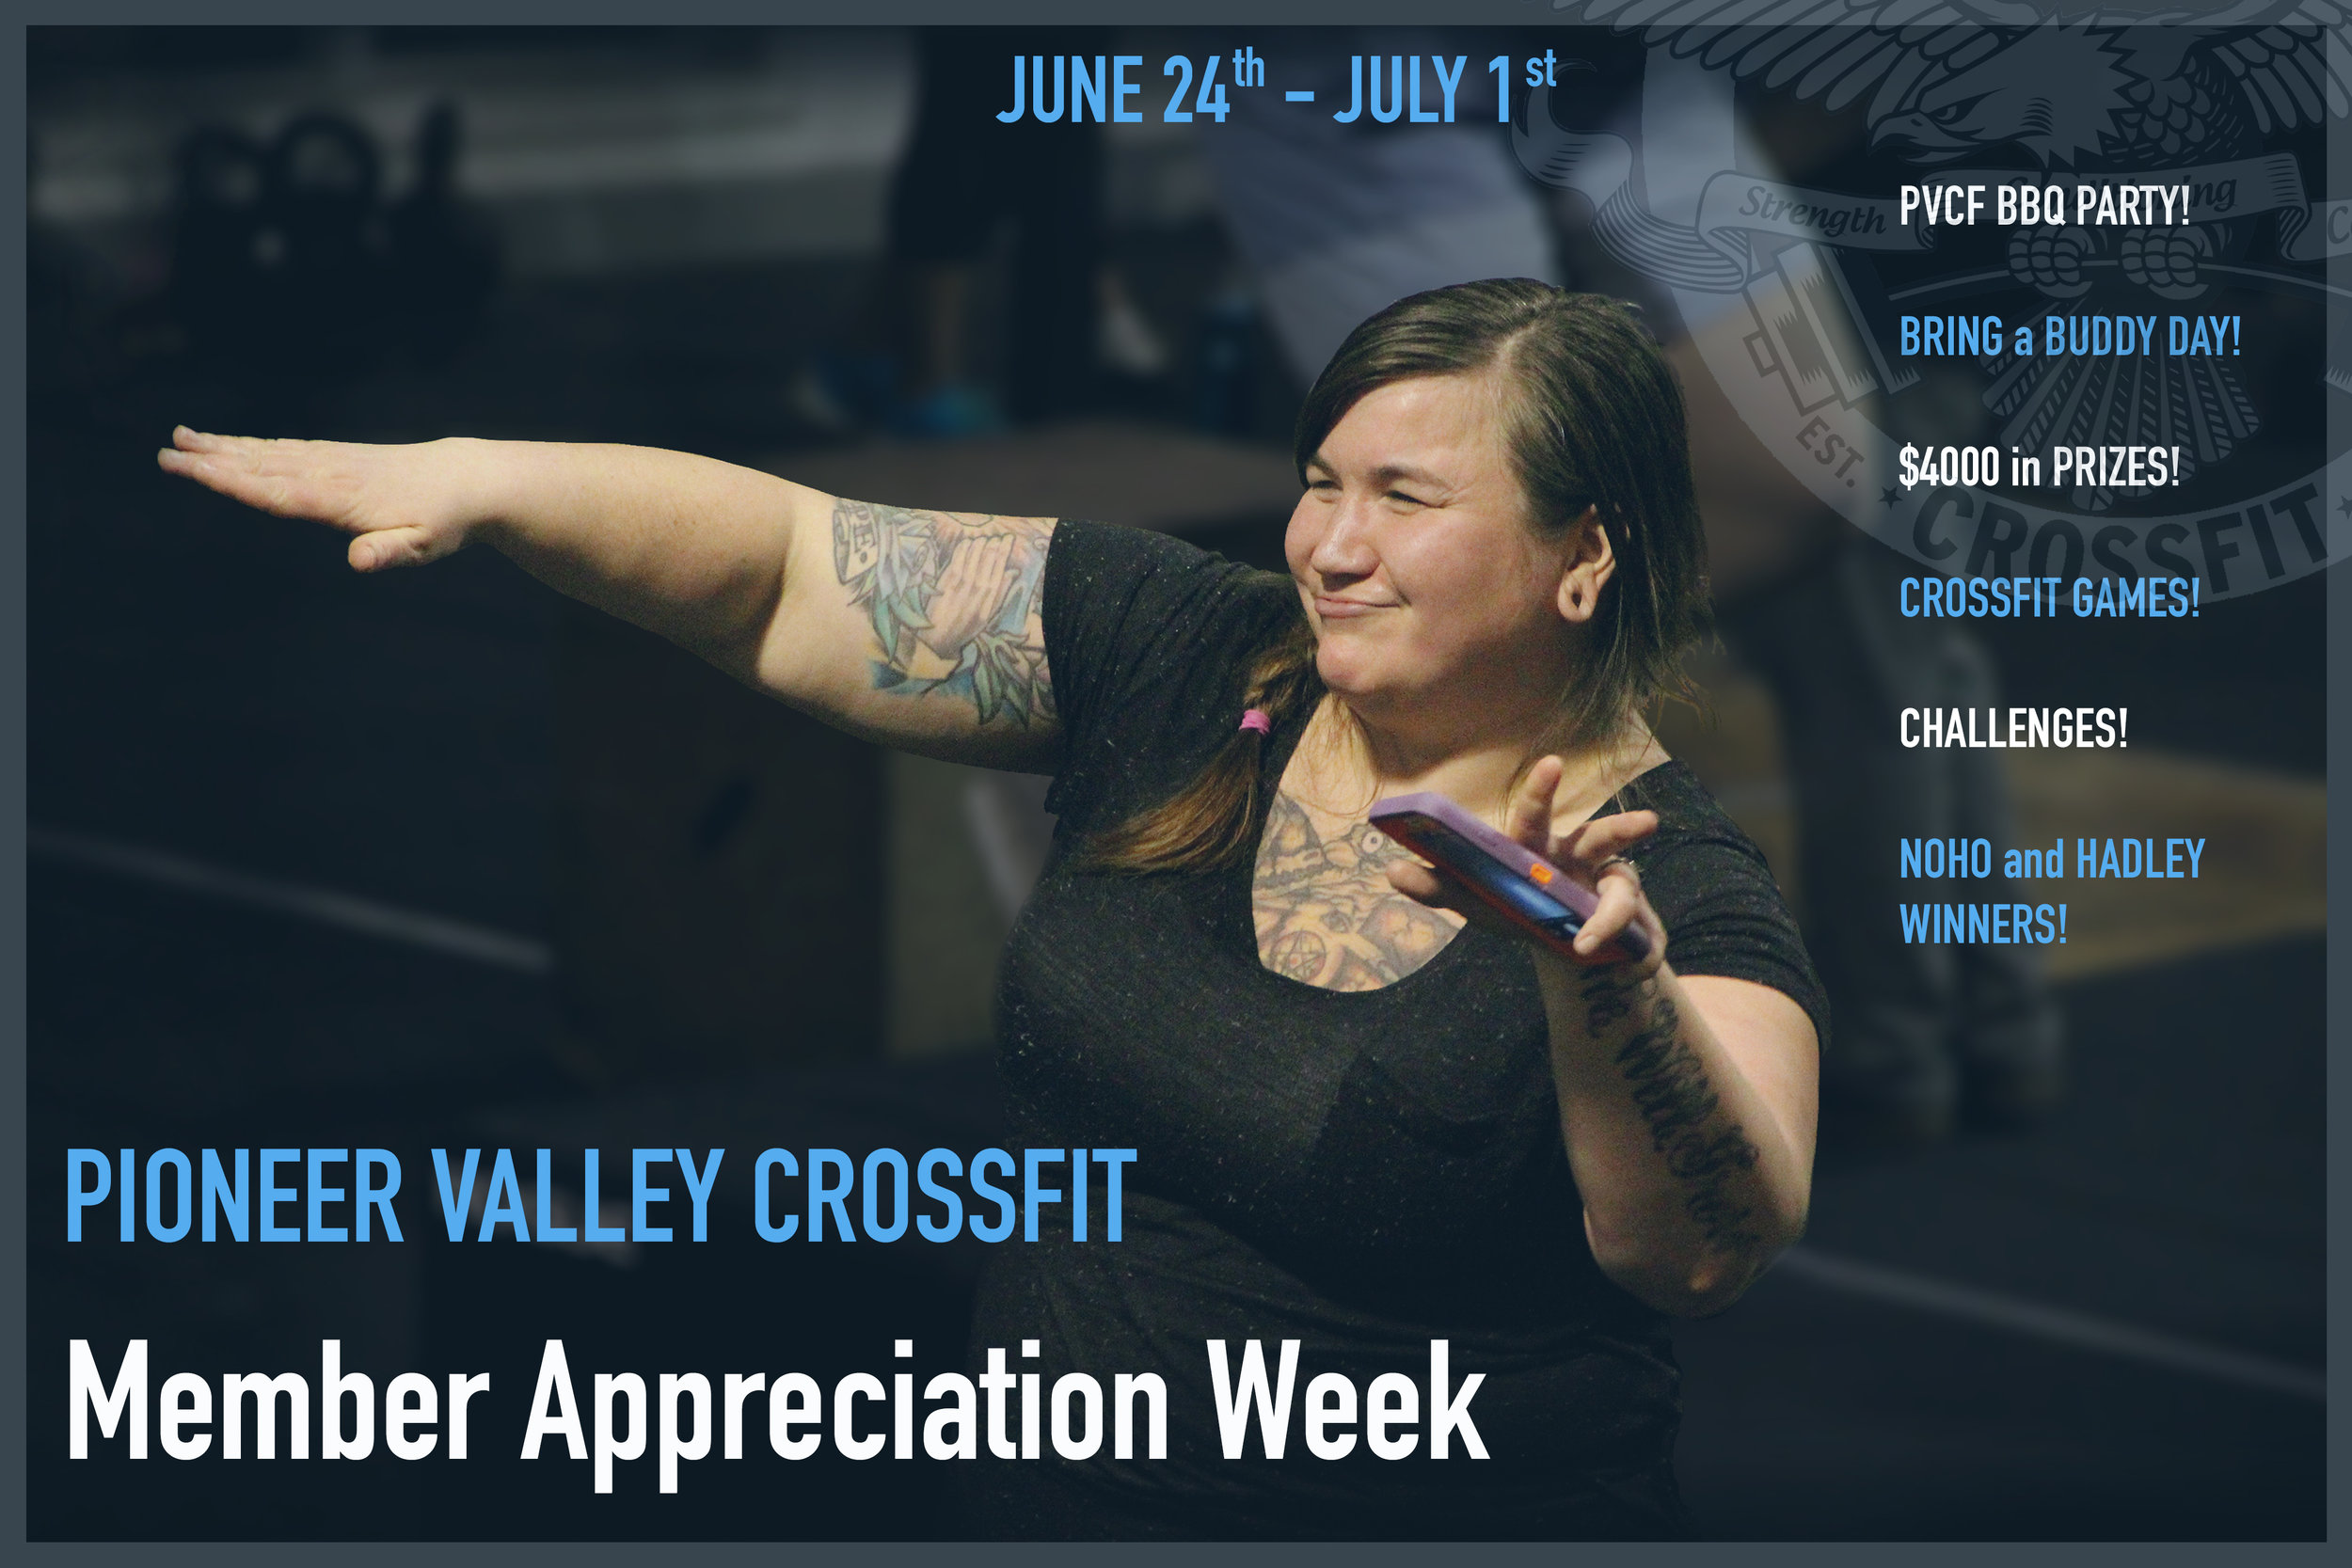 PVCF BBQ and Bring a Buddy Day! Over $4000 in prizes and celebration...JUST FOR YOU!  Click  here  to join in the fun!